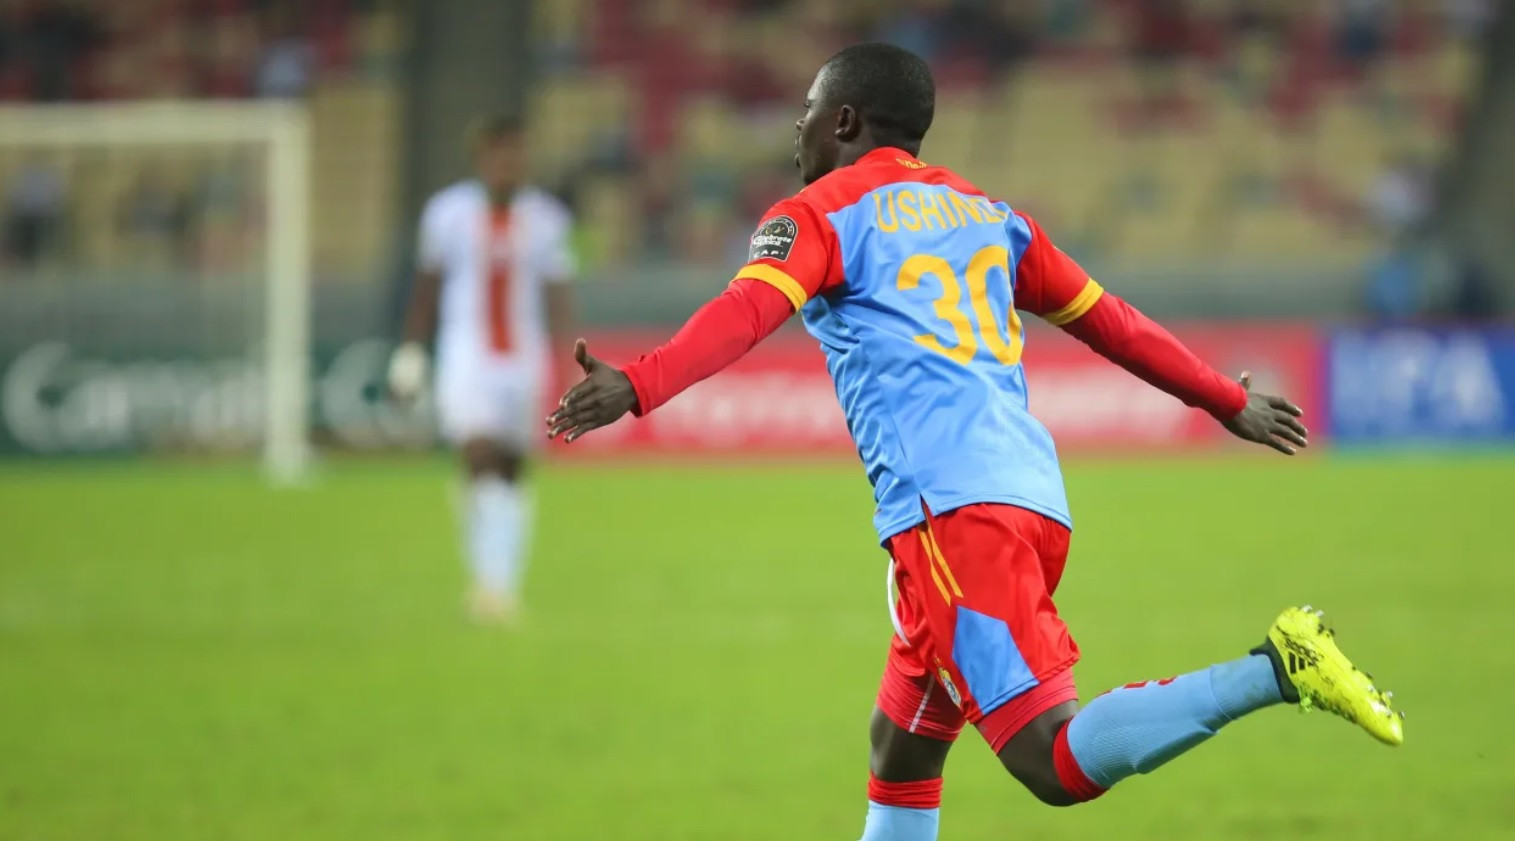 DR Congo defeat neighbours Congo as Group B begins at African Nations Championship